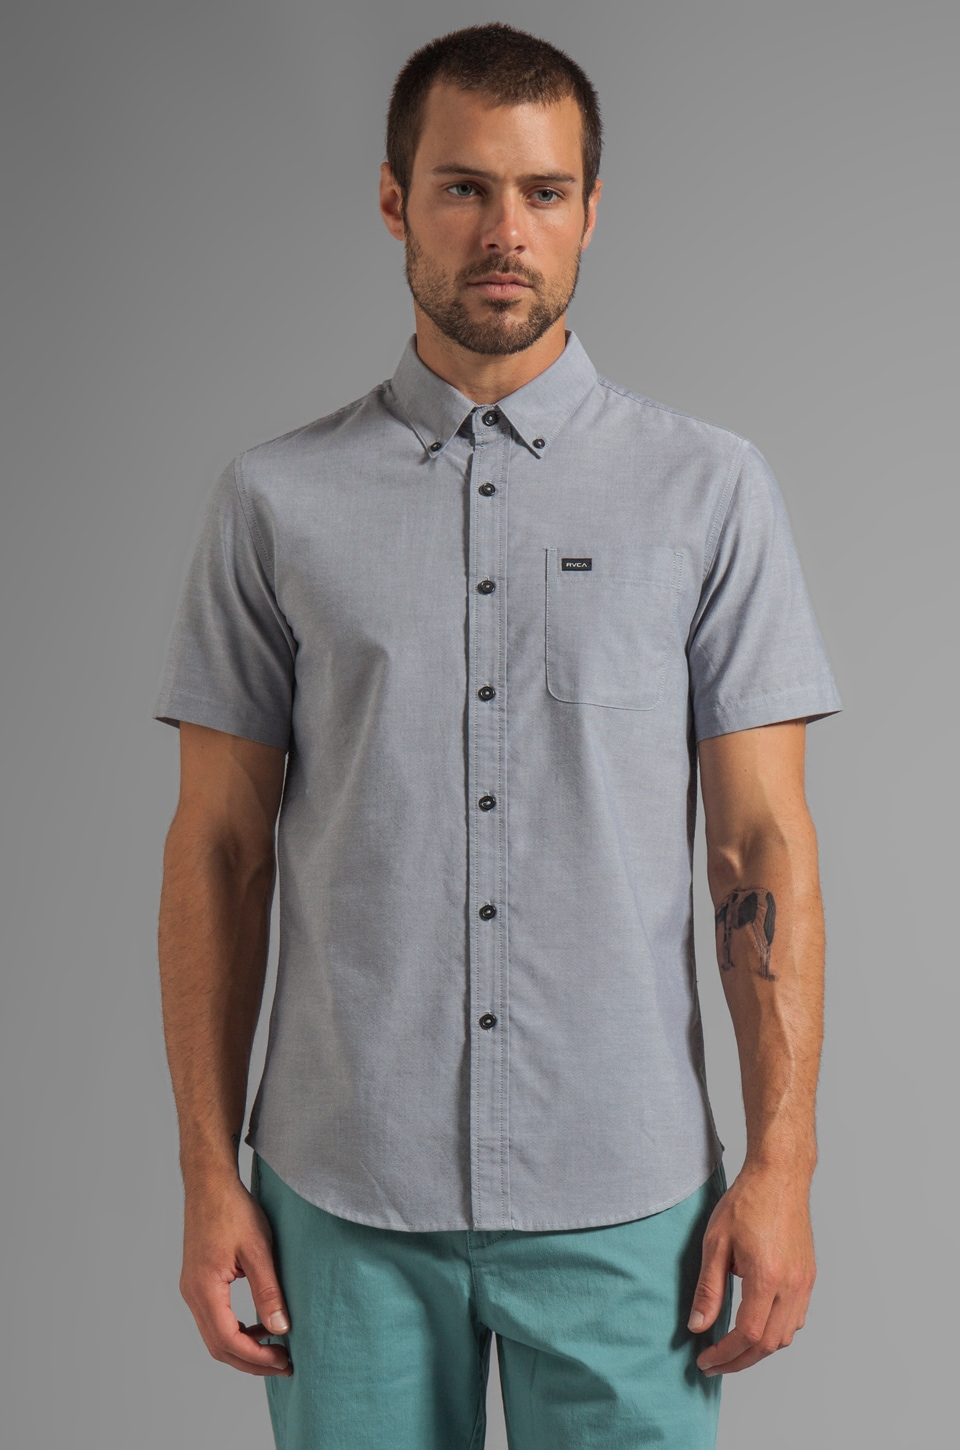 RVCA That'll Do Oxford Short Sleeve Button Down in Pavement